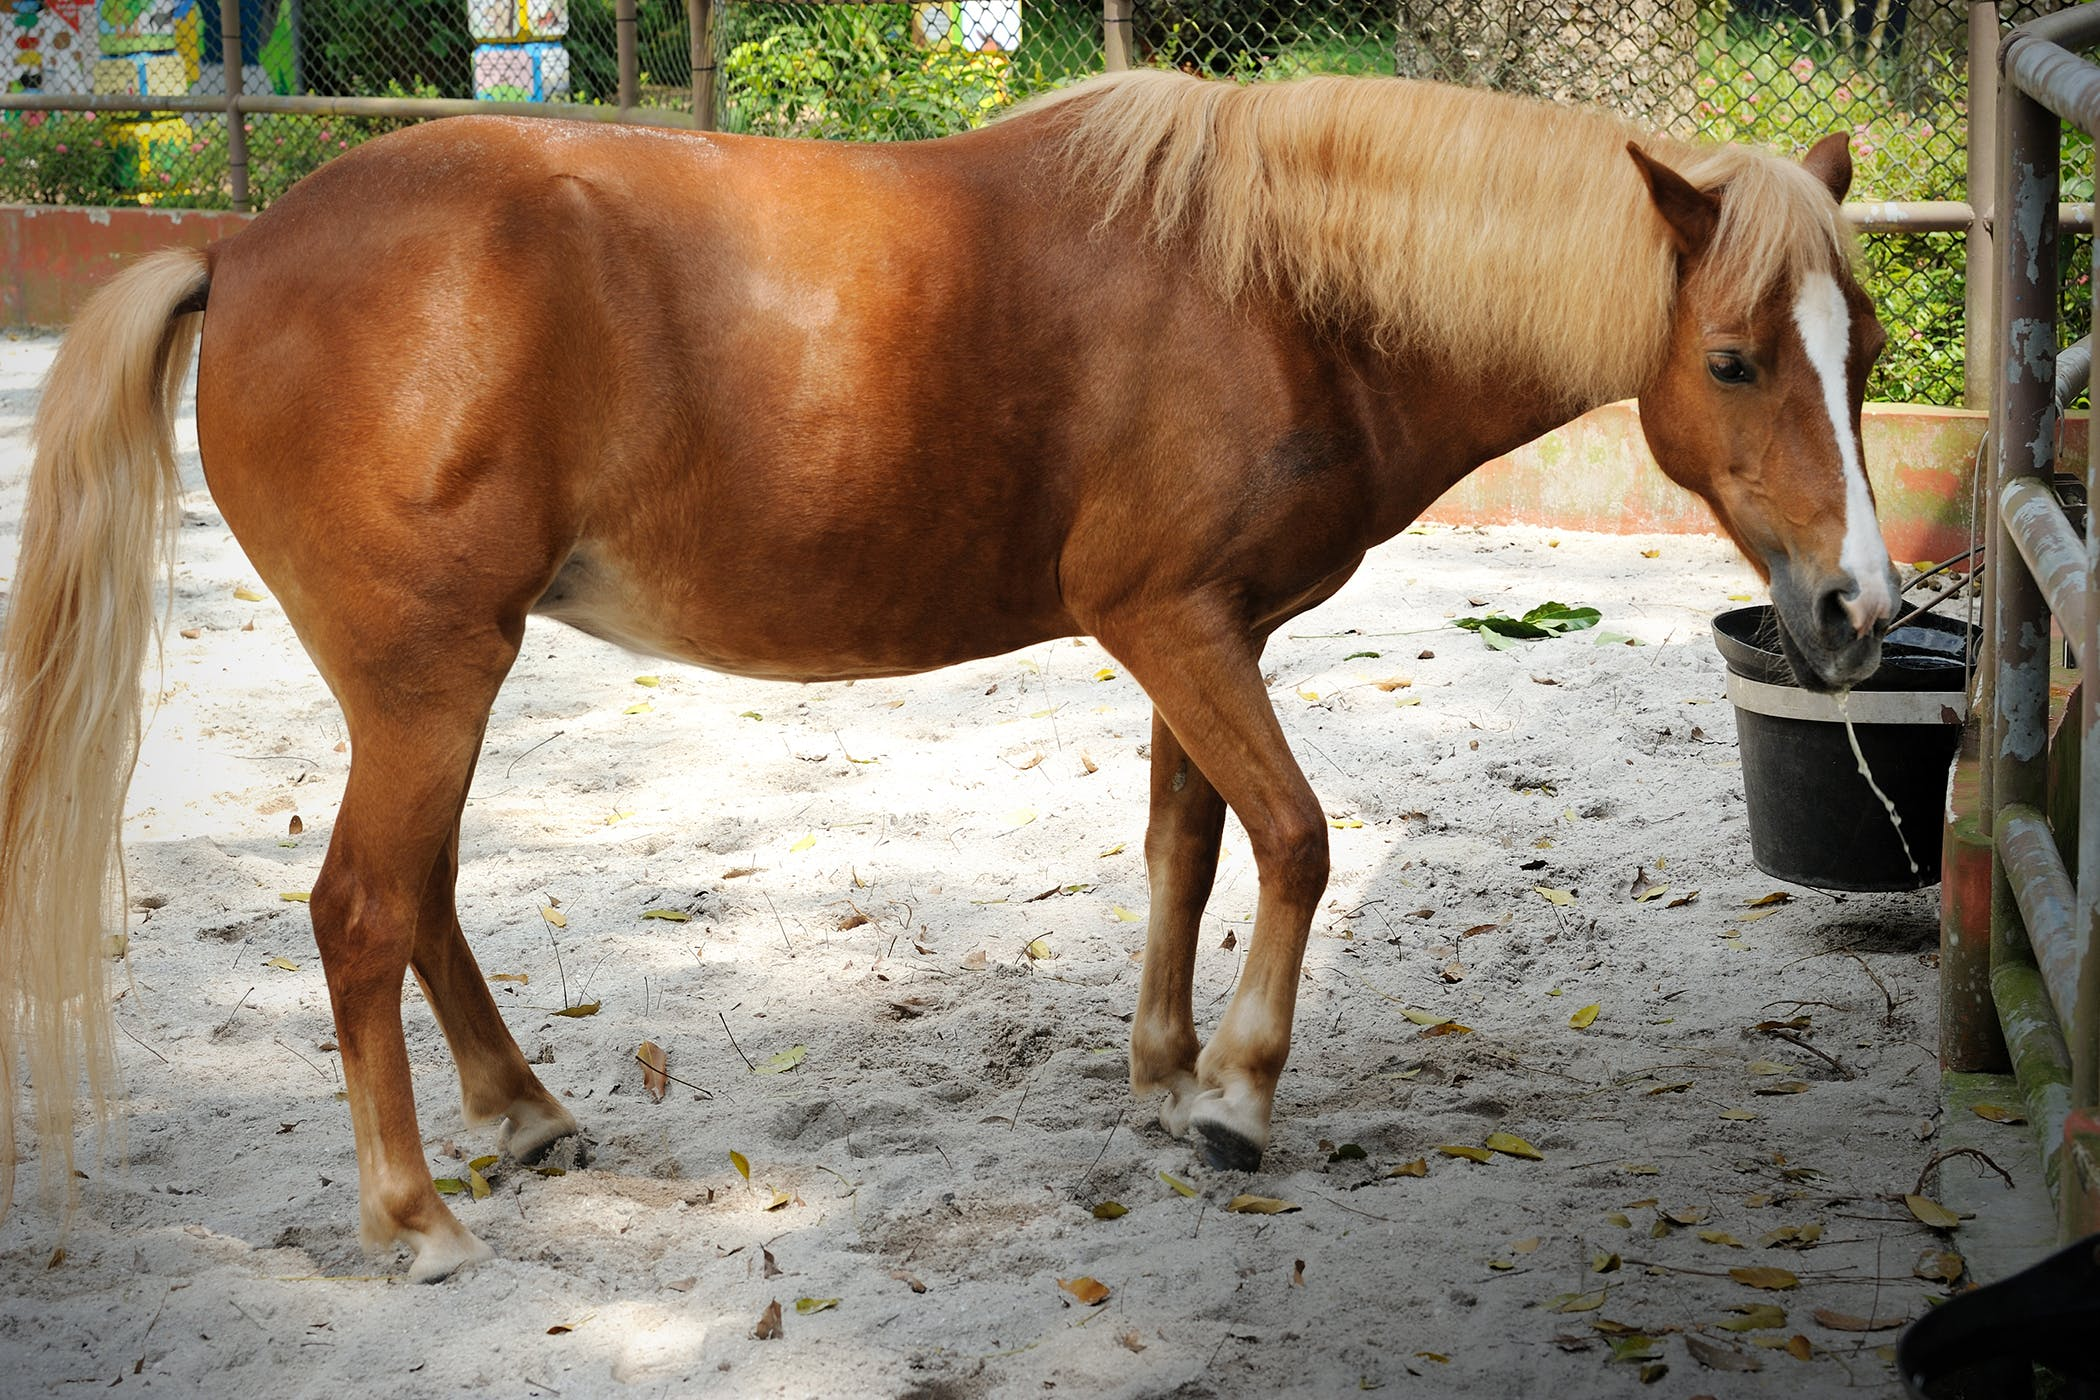 Sand Colic in Horses - Symptoms, Causes, Diagnosis